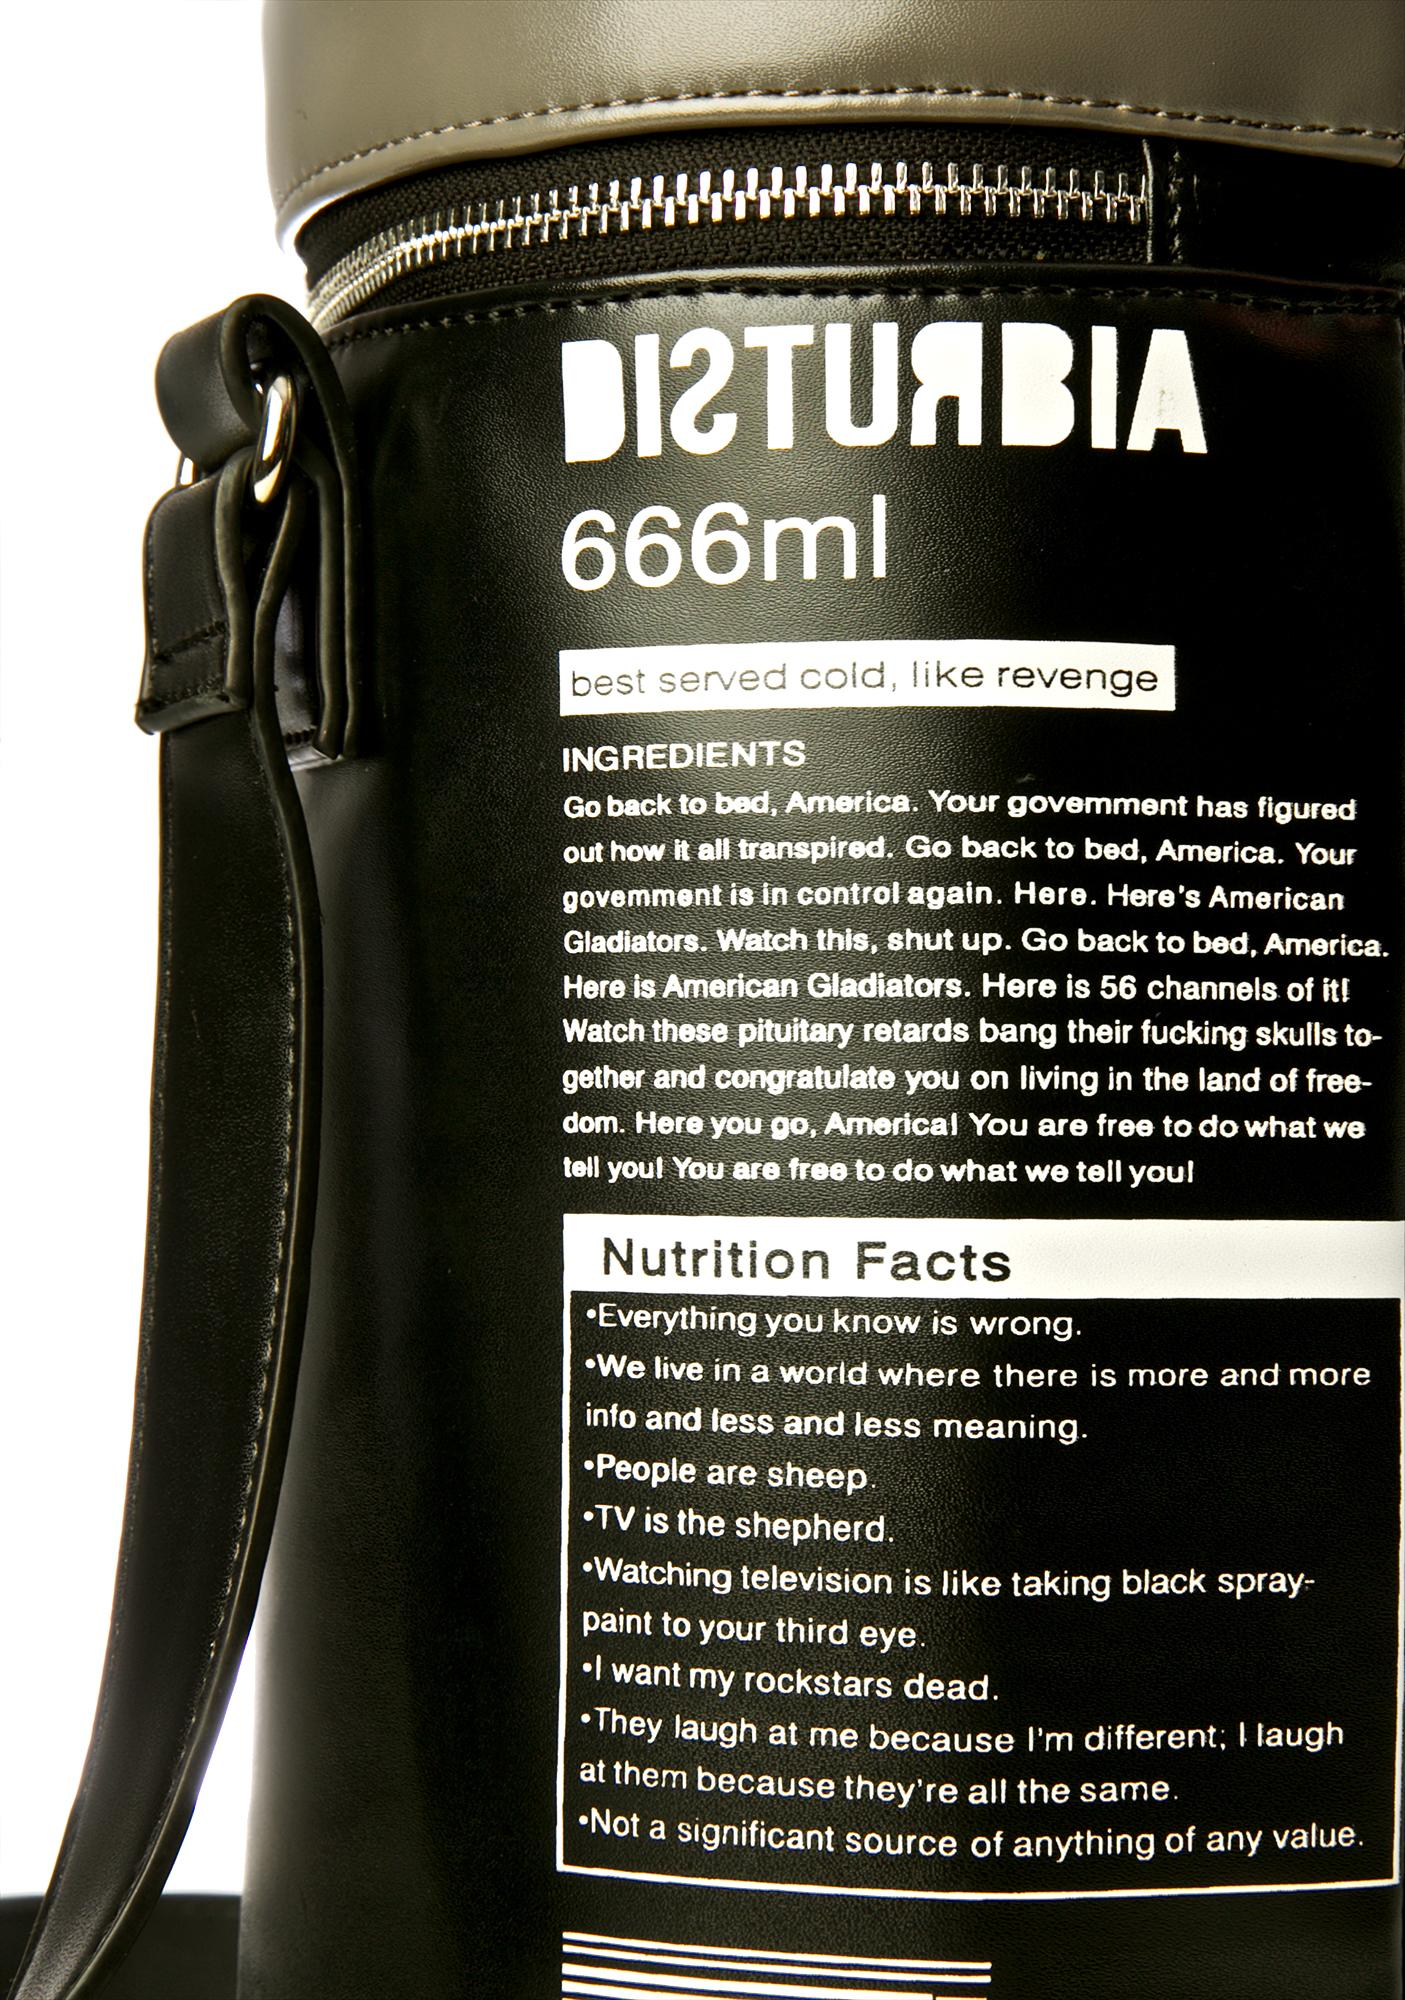 Disturbia Diet Culture Bag